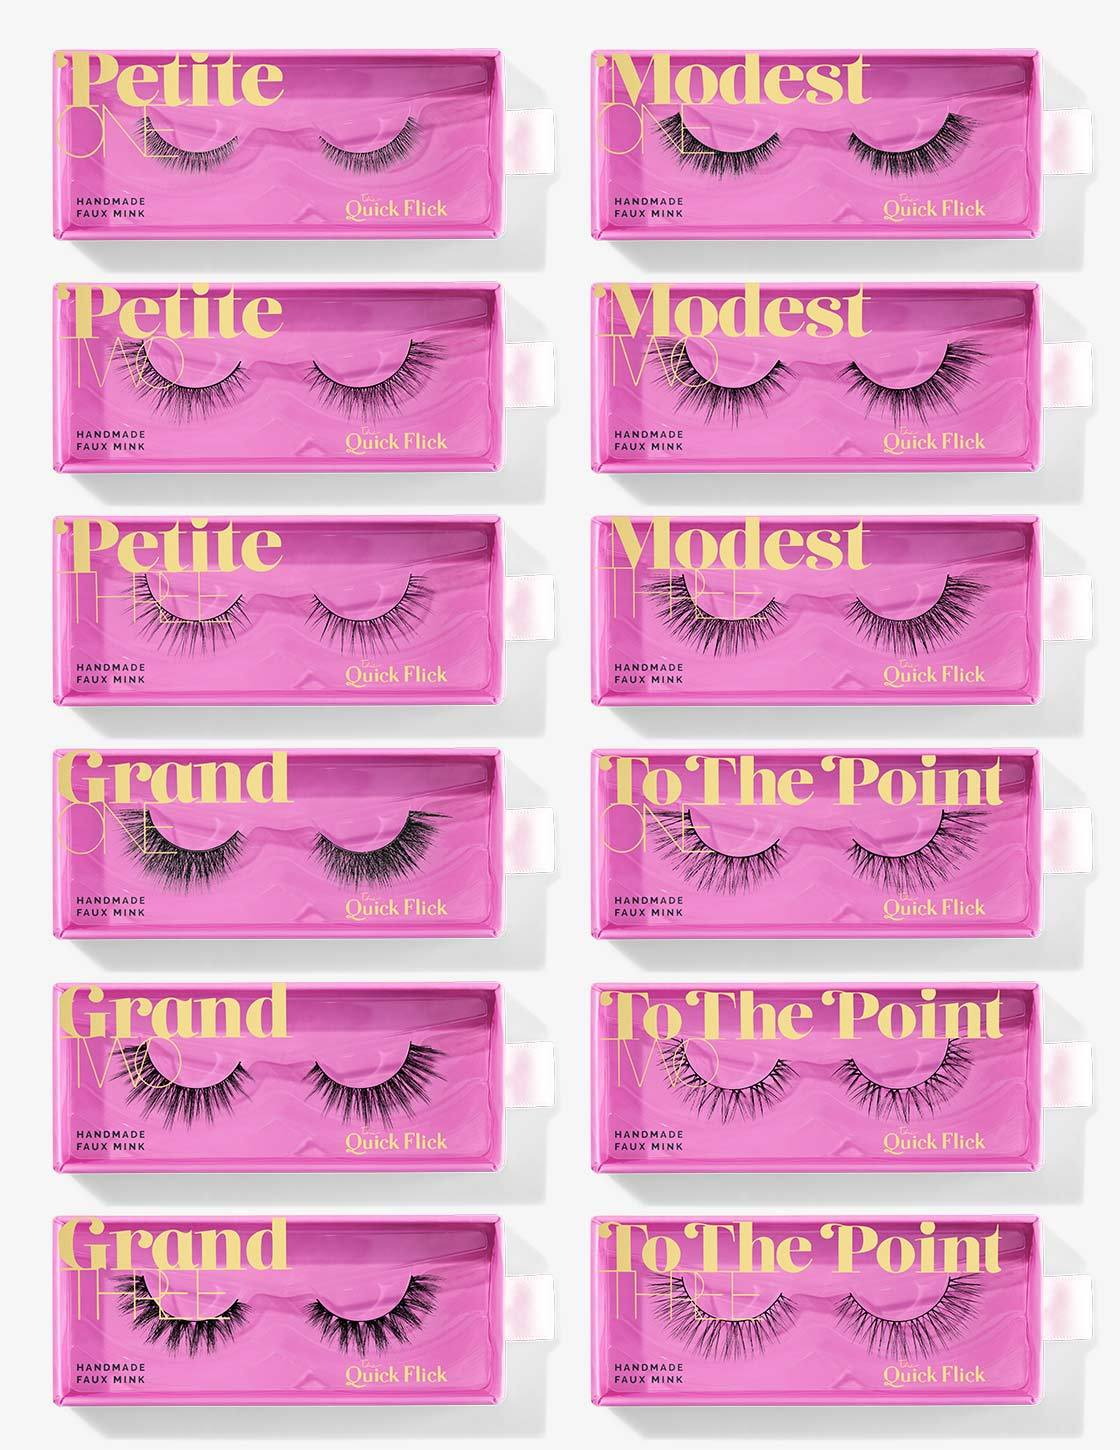 The Want It All Lash Collection